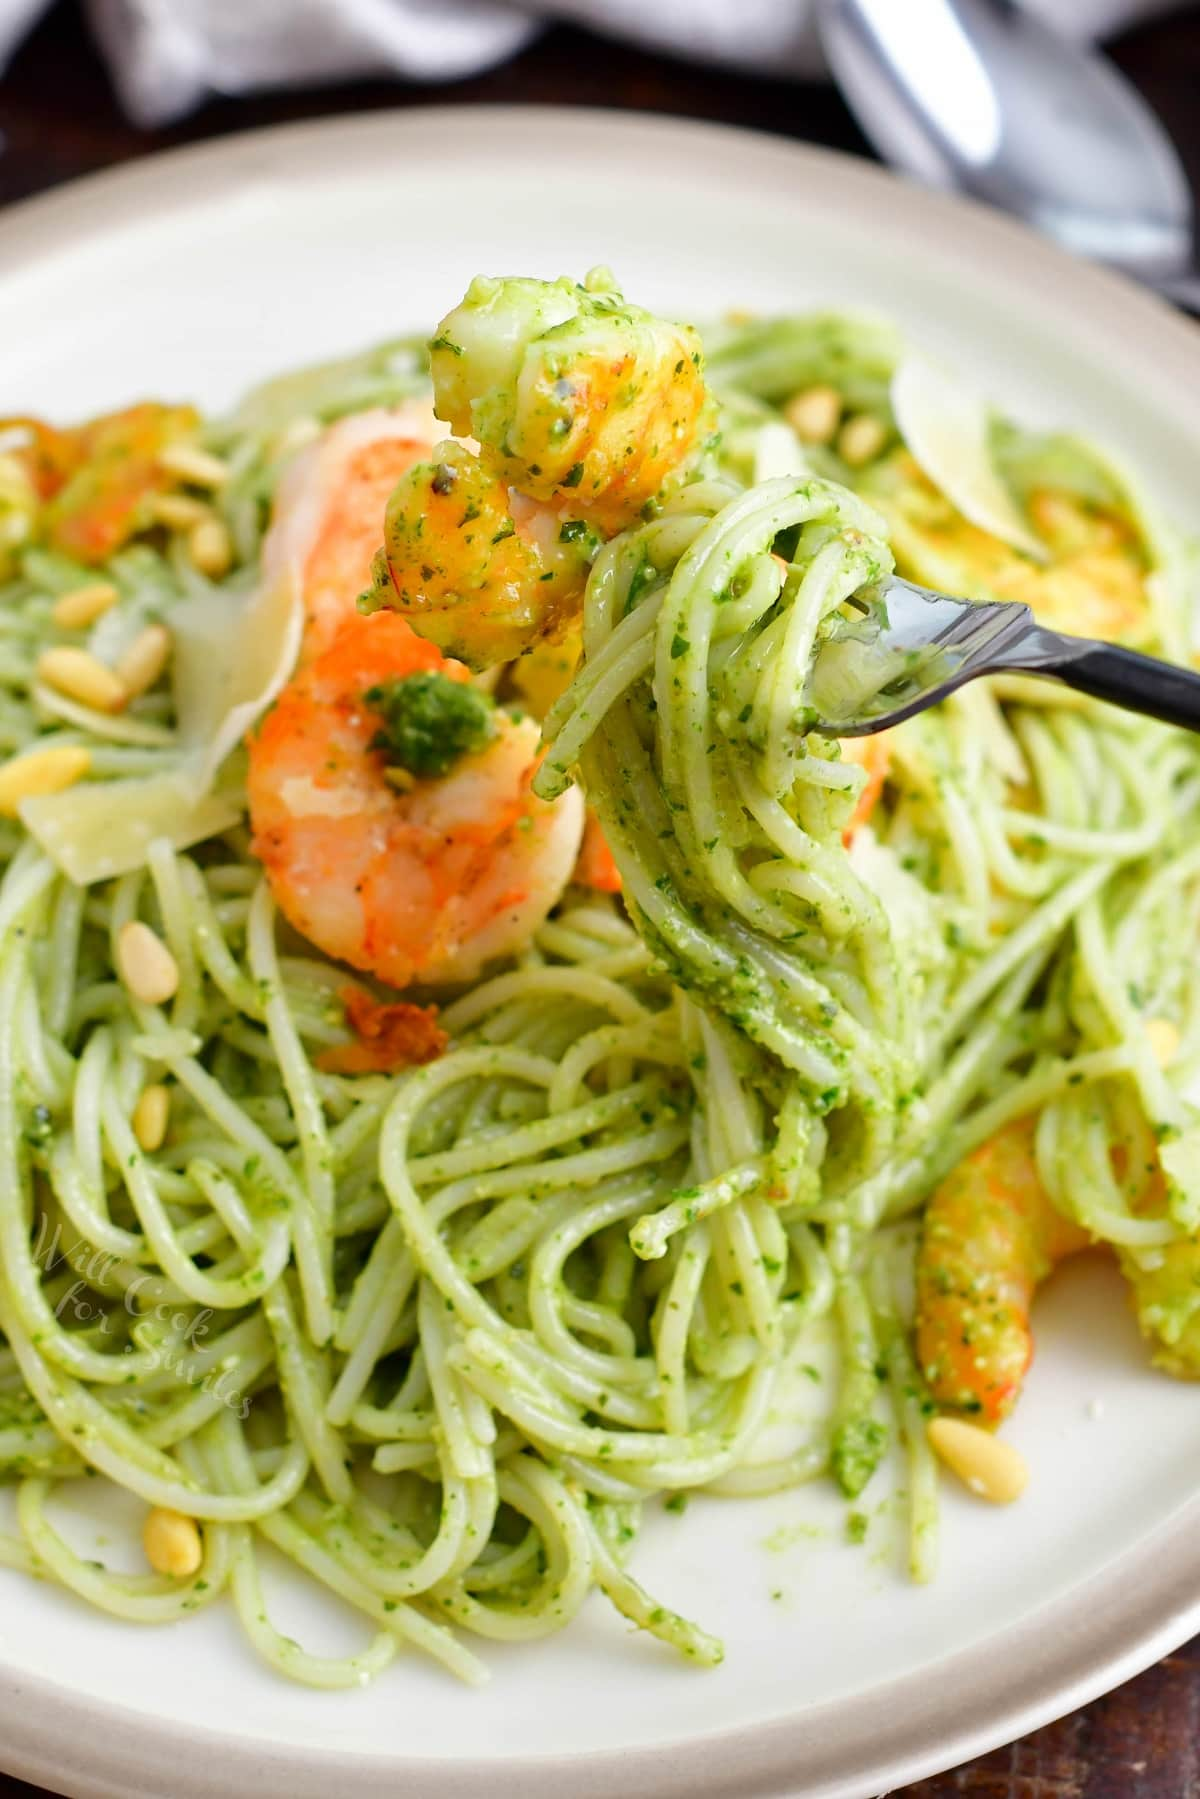 A fork is twirling a bite sized portion of pesto pasta.